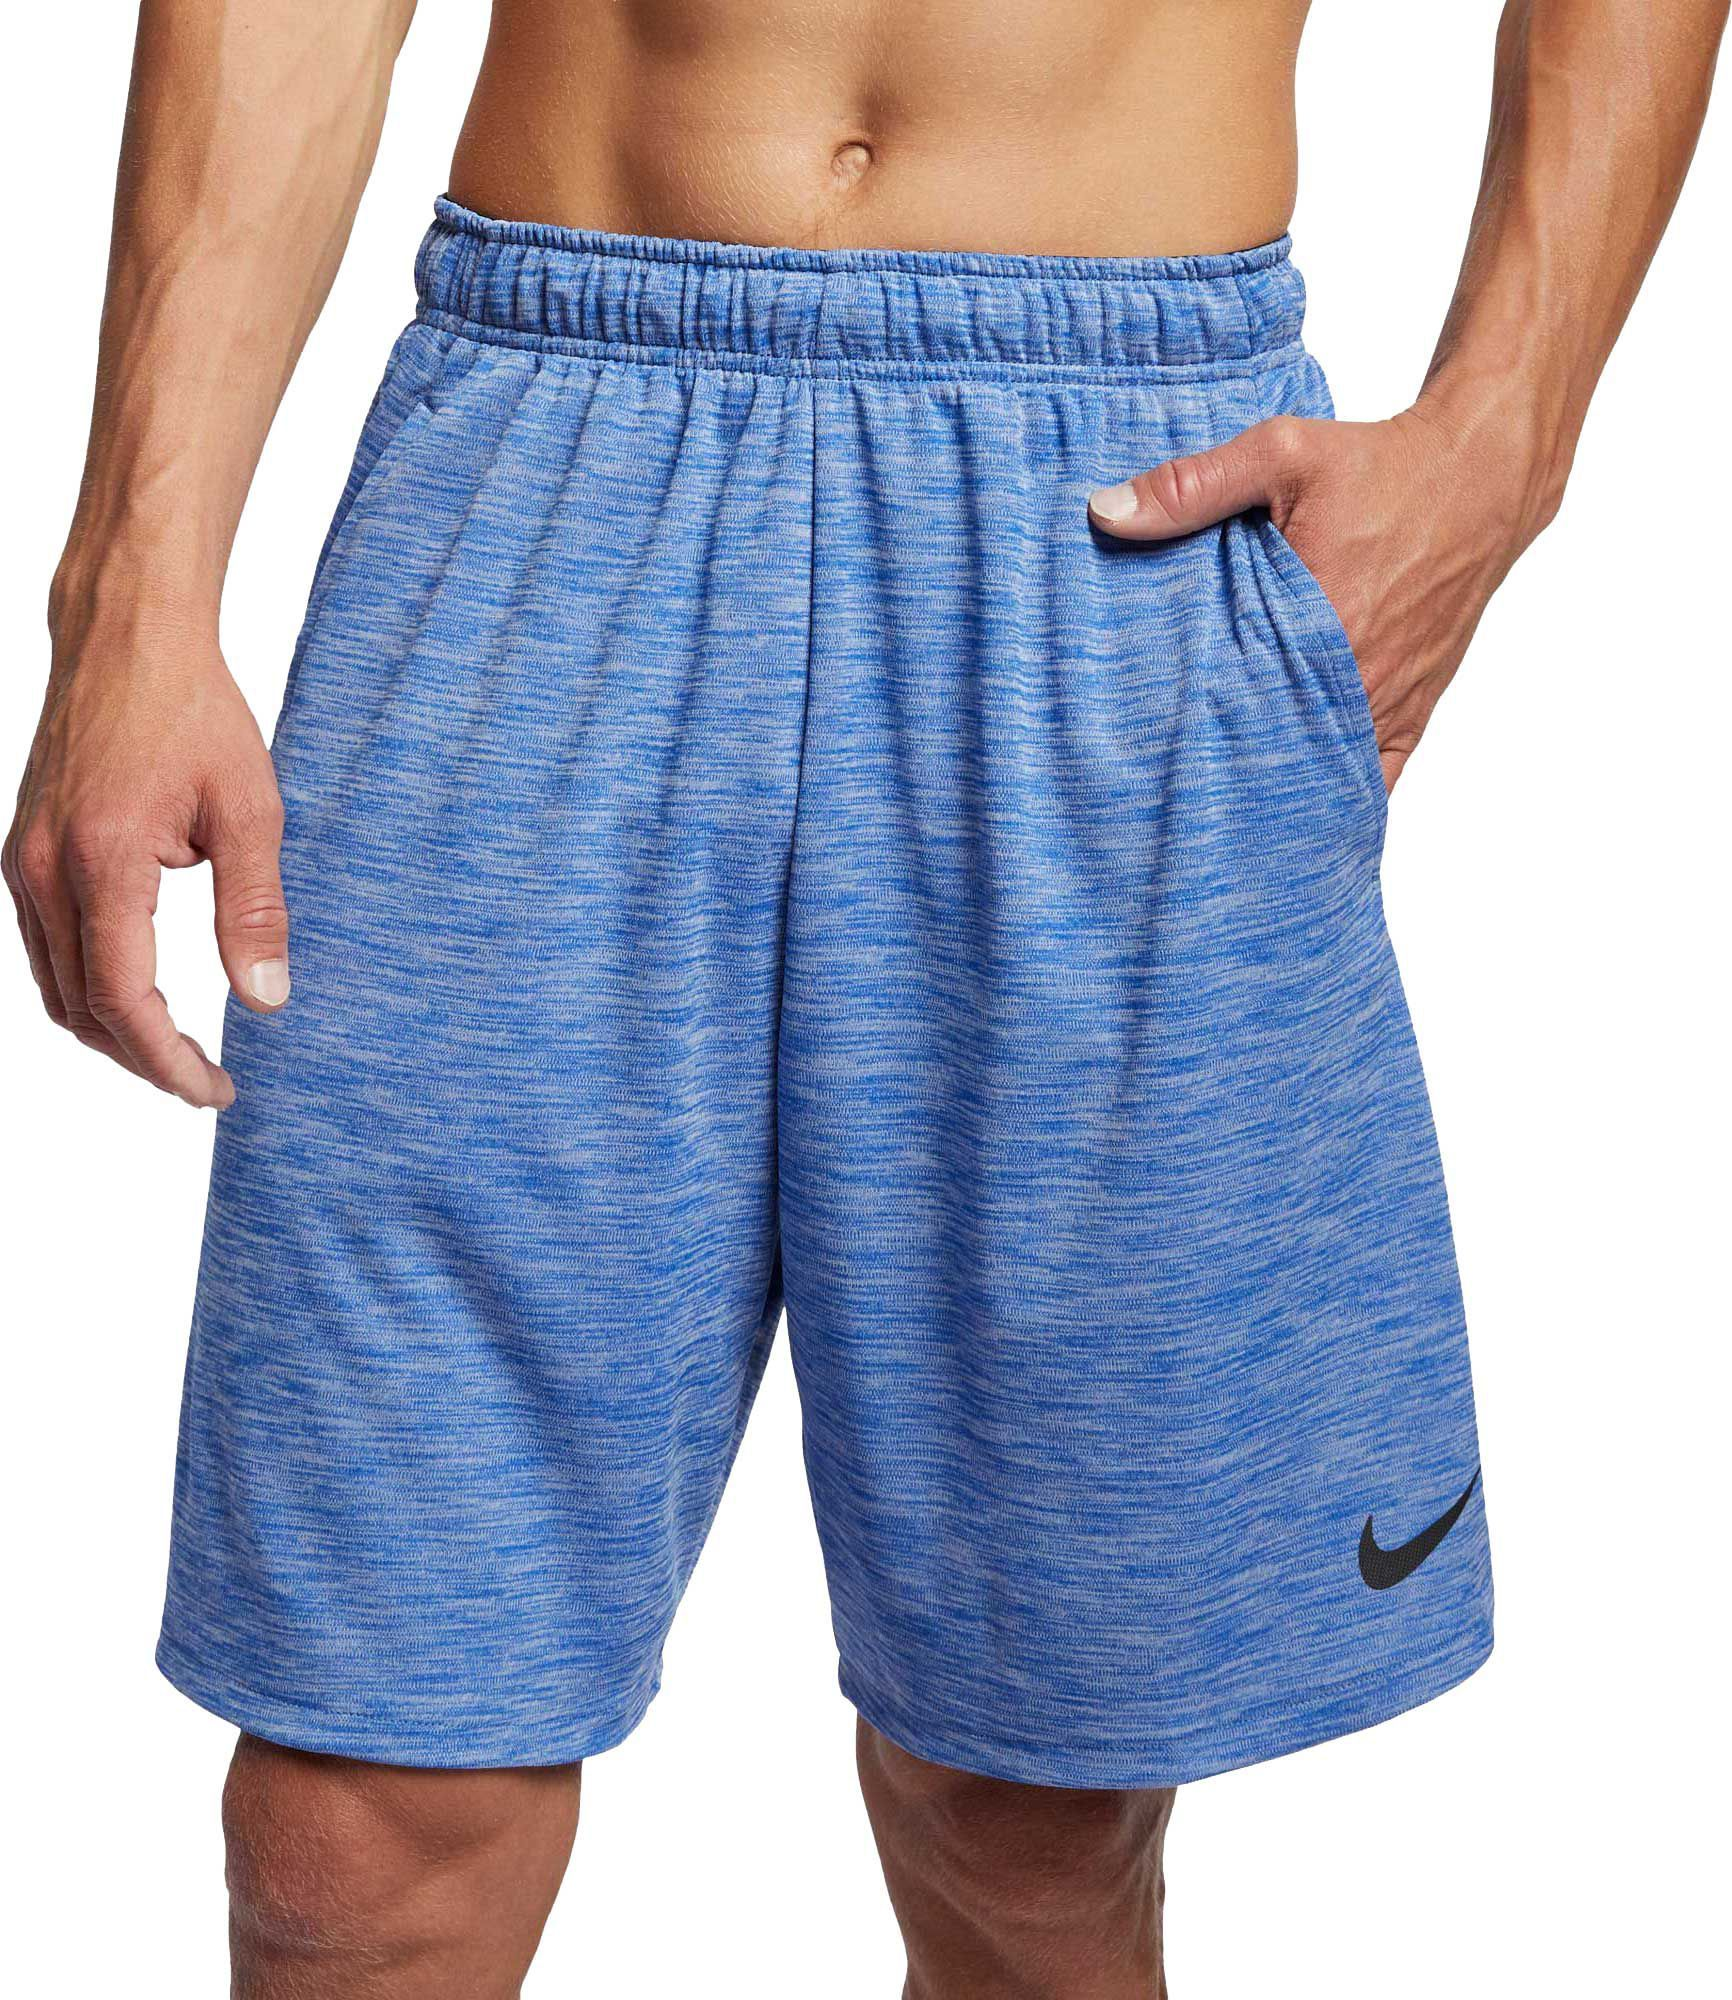 ad32363a42d9c Nike Men's Dry Veneer Training Shorts in 2019 | Products | Nike men ...